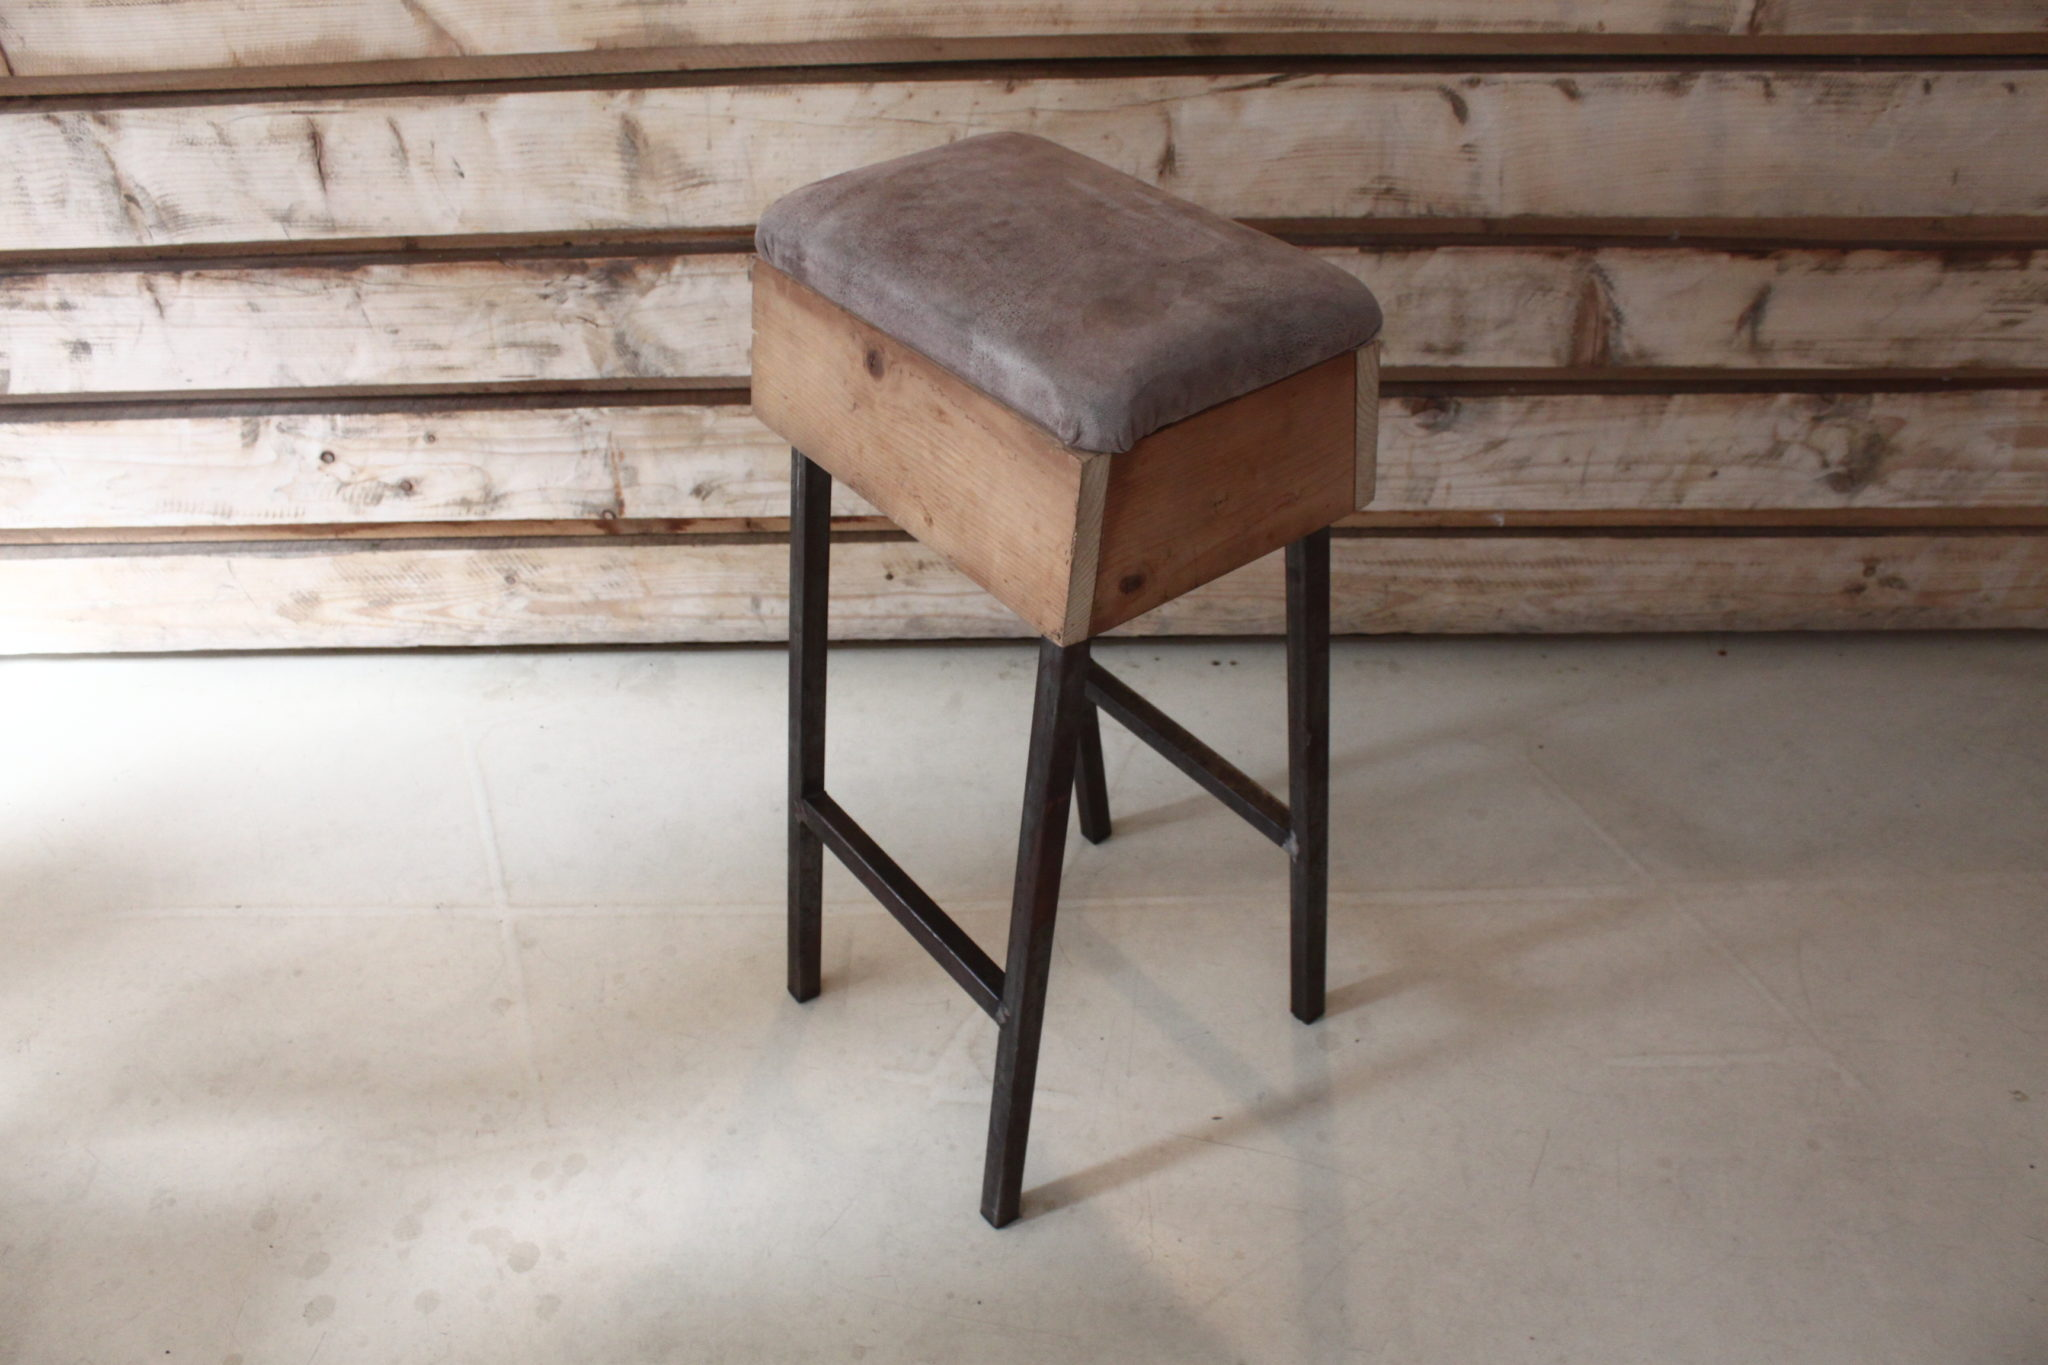 BUCK_BAR_STOOL_INSPIRATED_BY_CHILDREN_SPORT_CURT_BUCK (1)